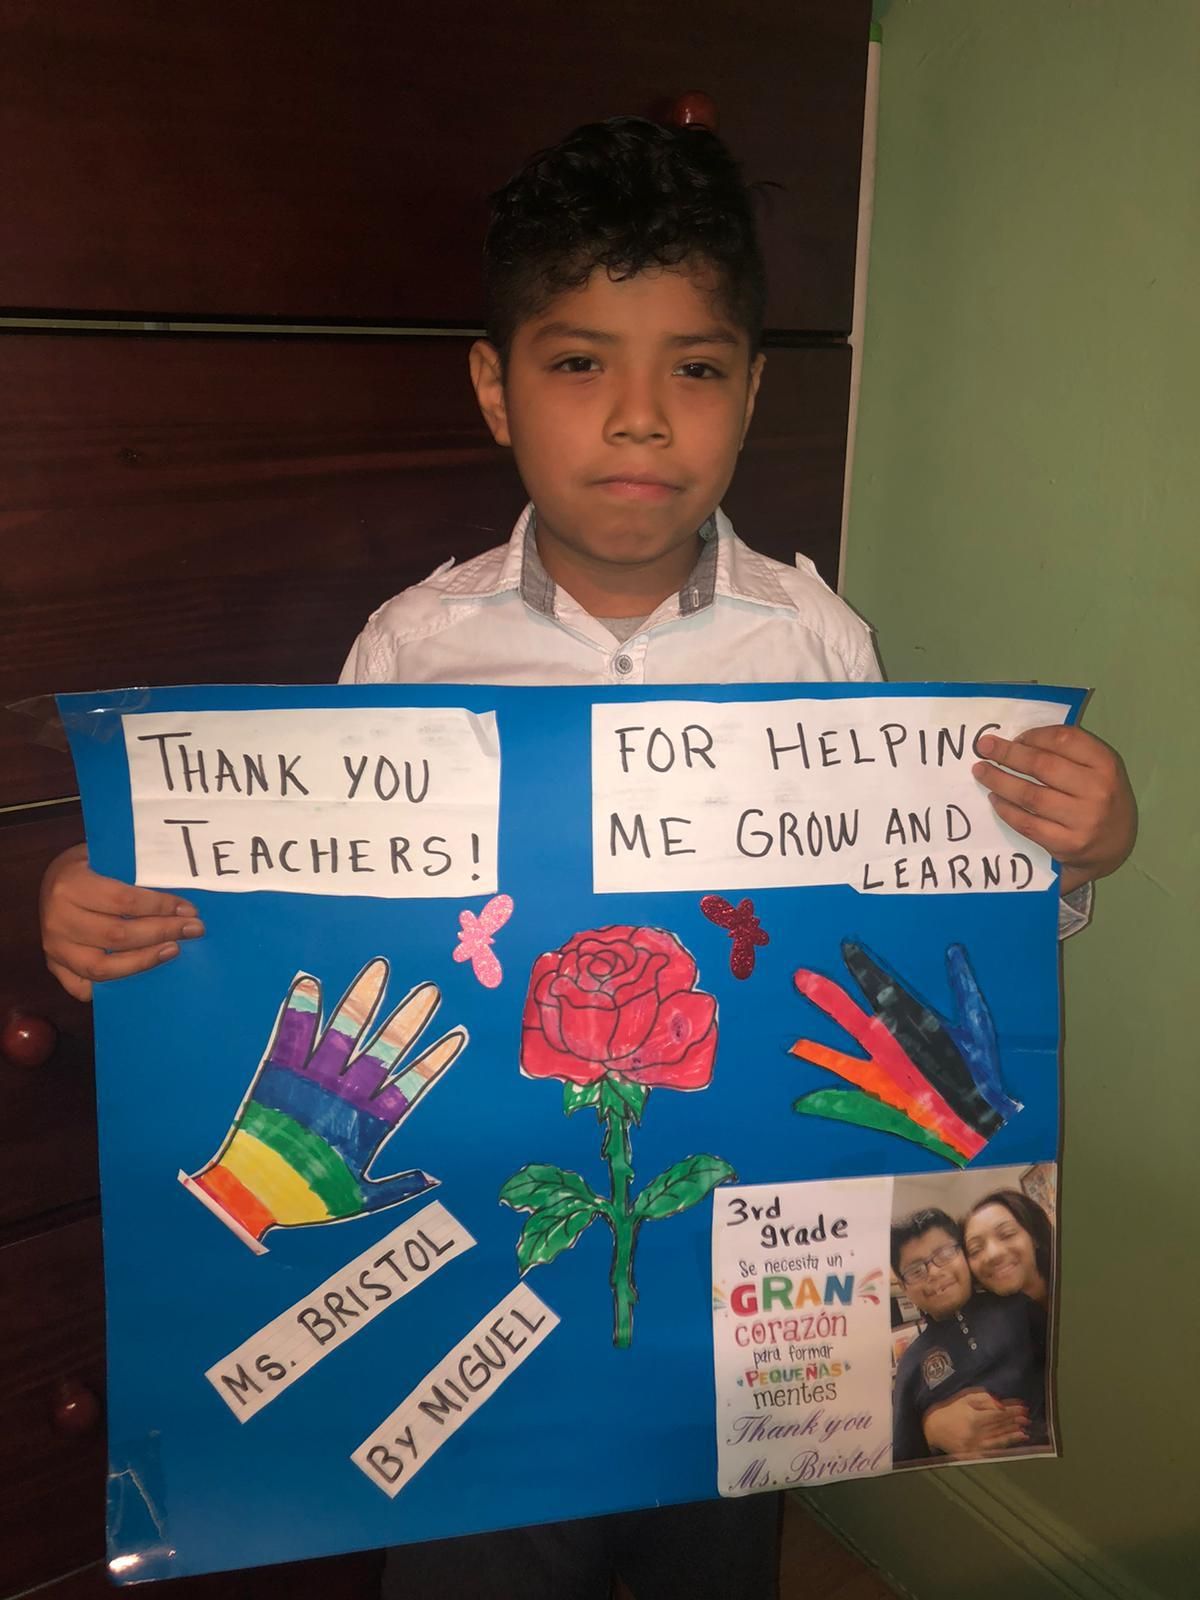 Miguel with his poster thanking Ms. Bristol